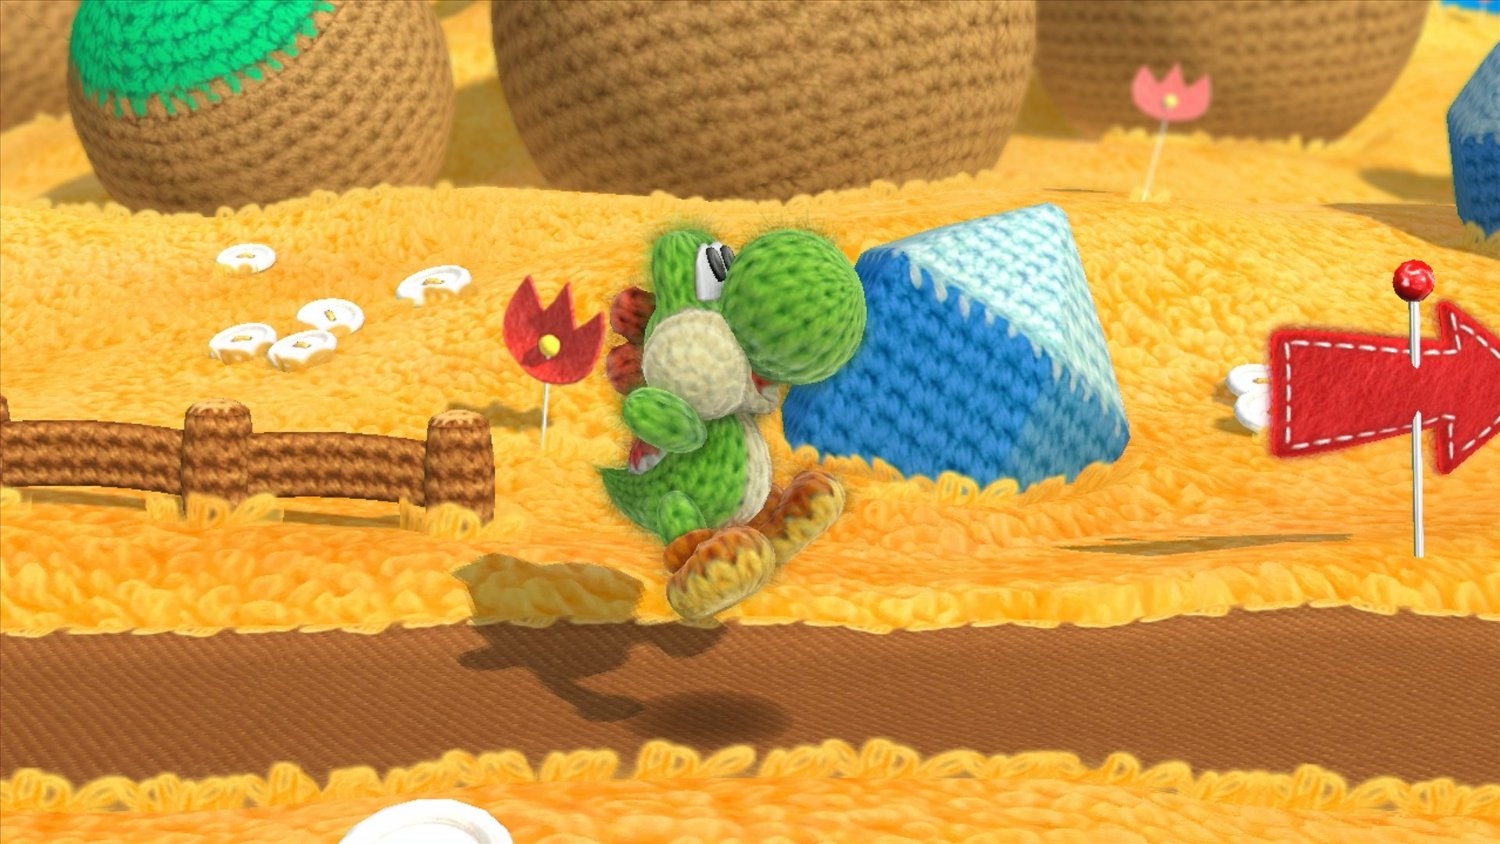 Yoshi's Woolly World Wii U Review Screenshot 1